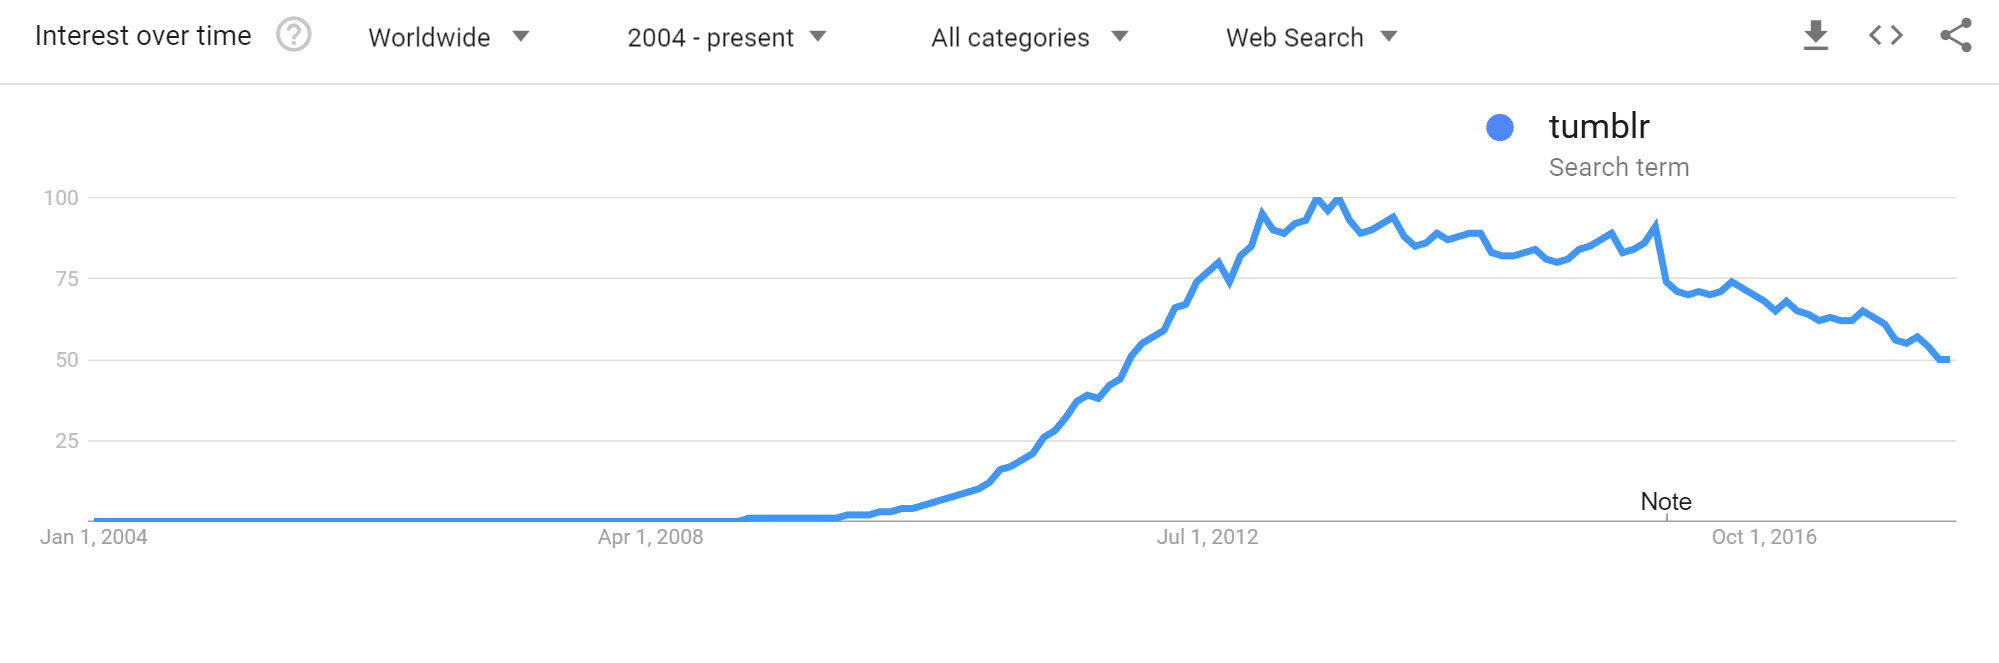 Tumblr Google Trends